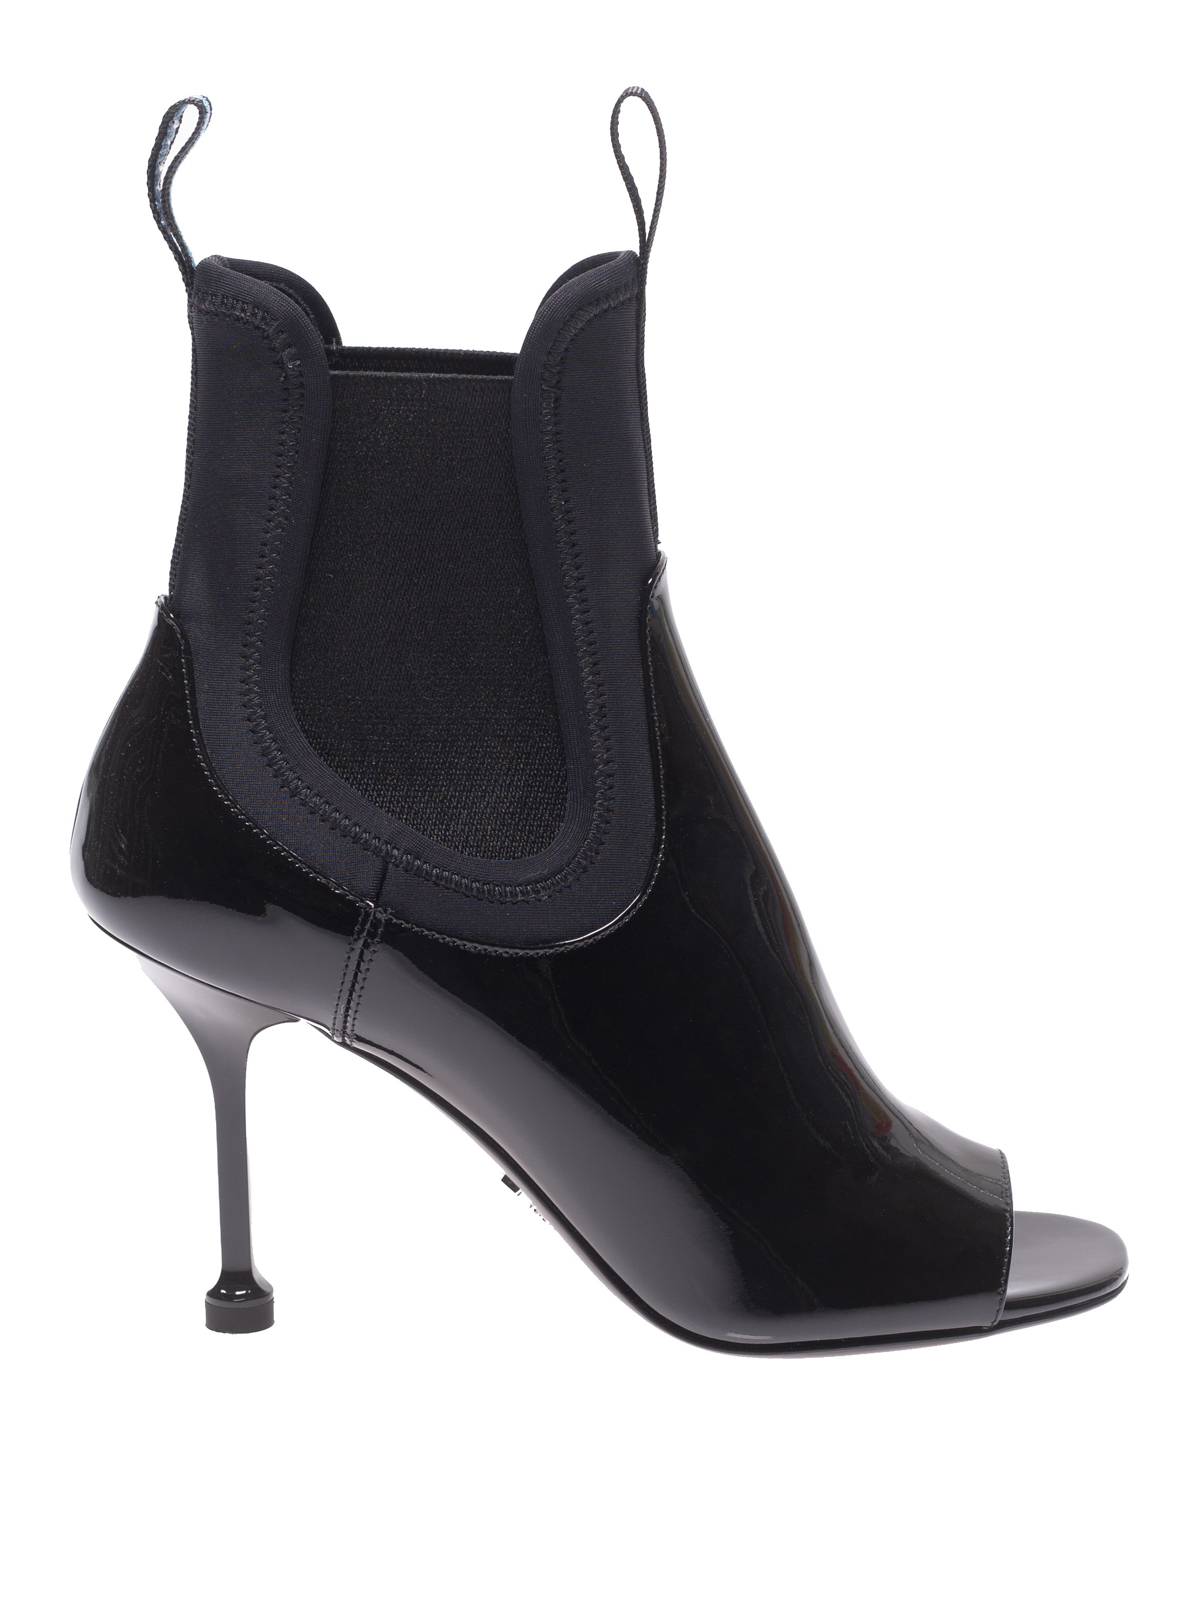 b960ad42ebb Prada - Black patent and neoprene peep toe booties - ankle boots ...